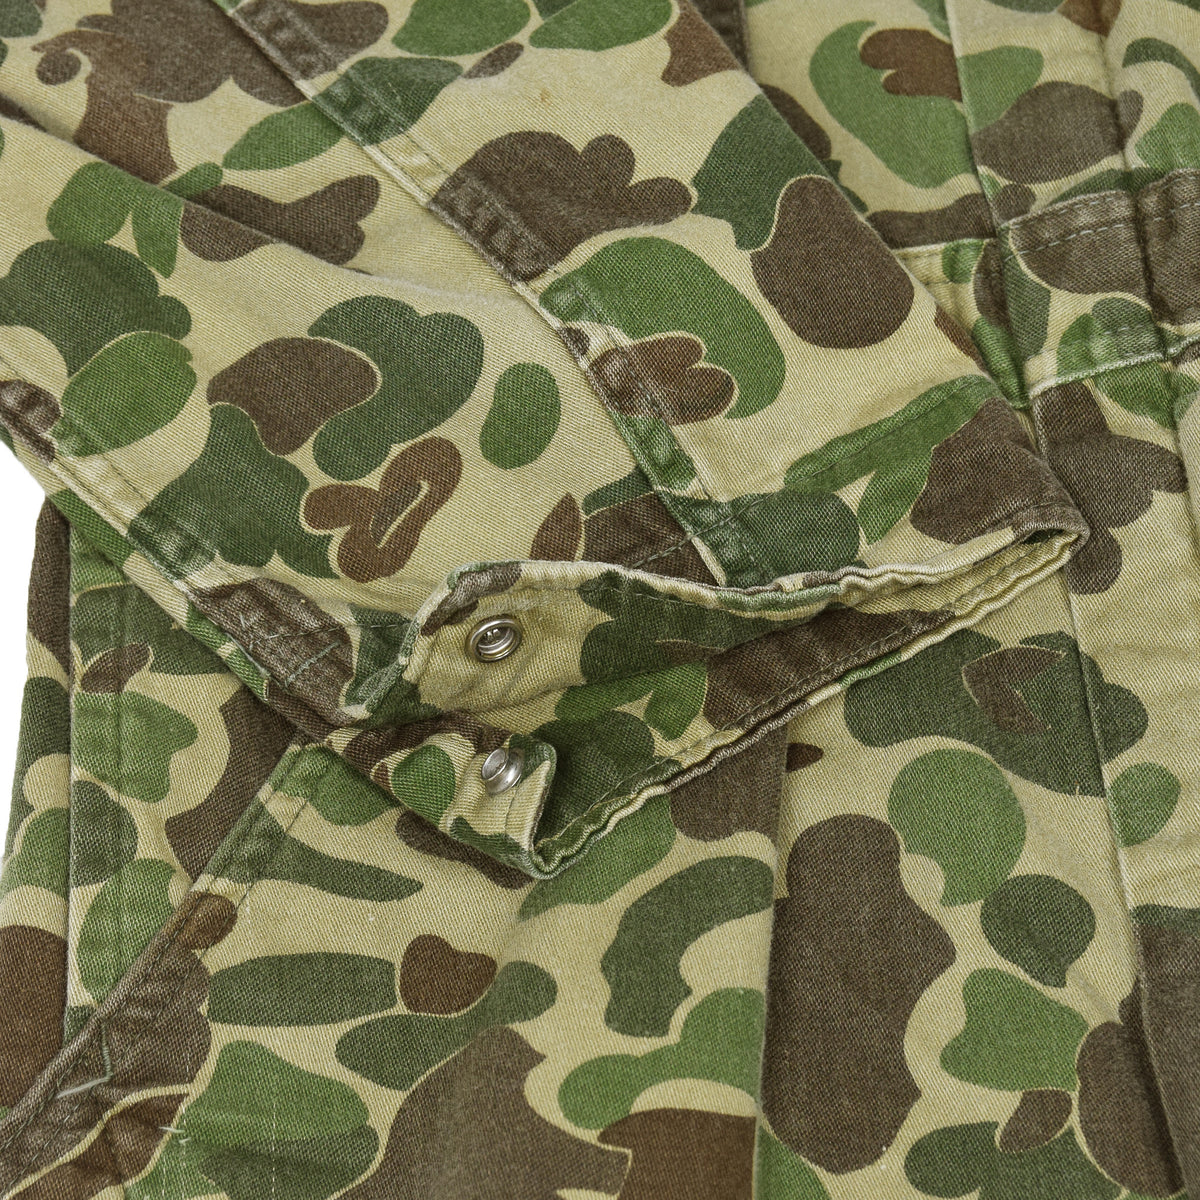 Vintage Walls Master Made Duck Camo Hunting Coveralls Made in USA L cuff